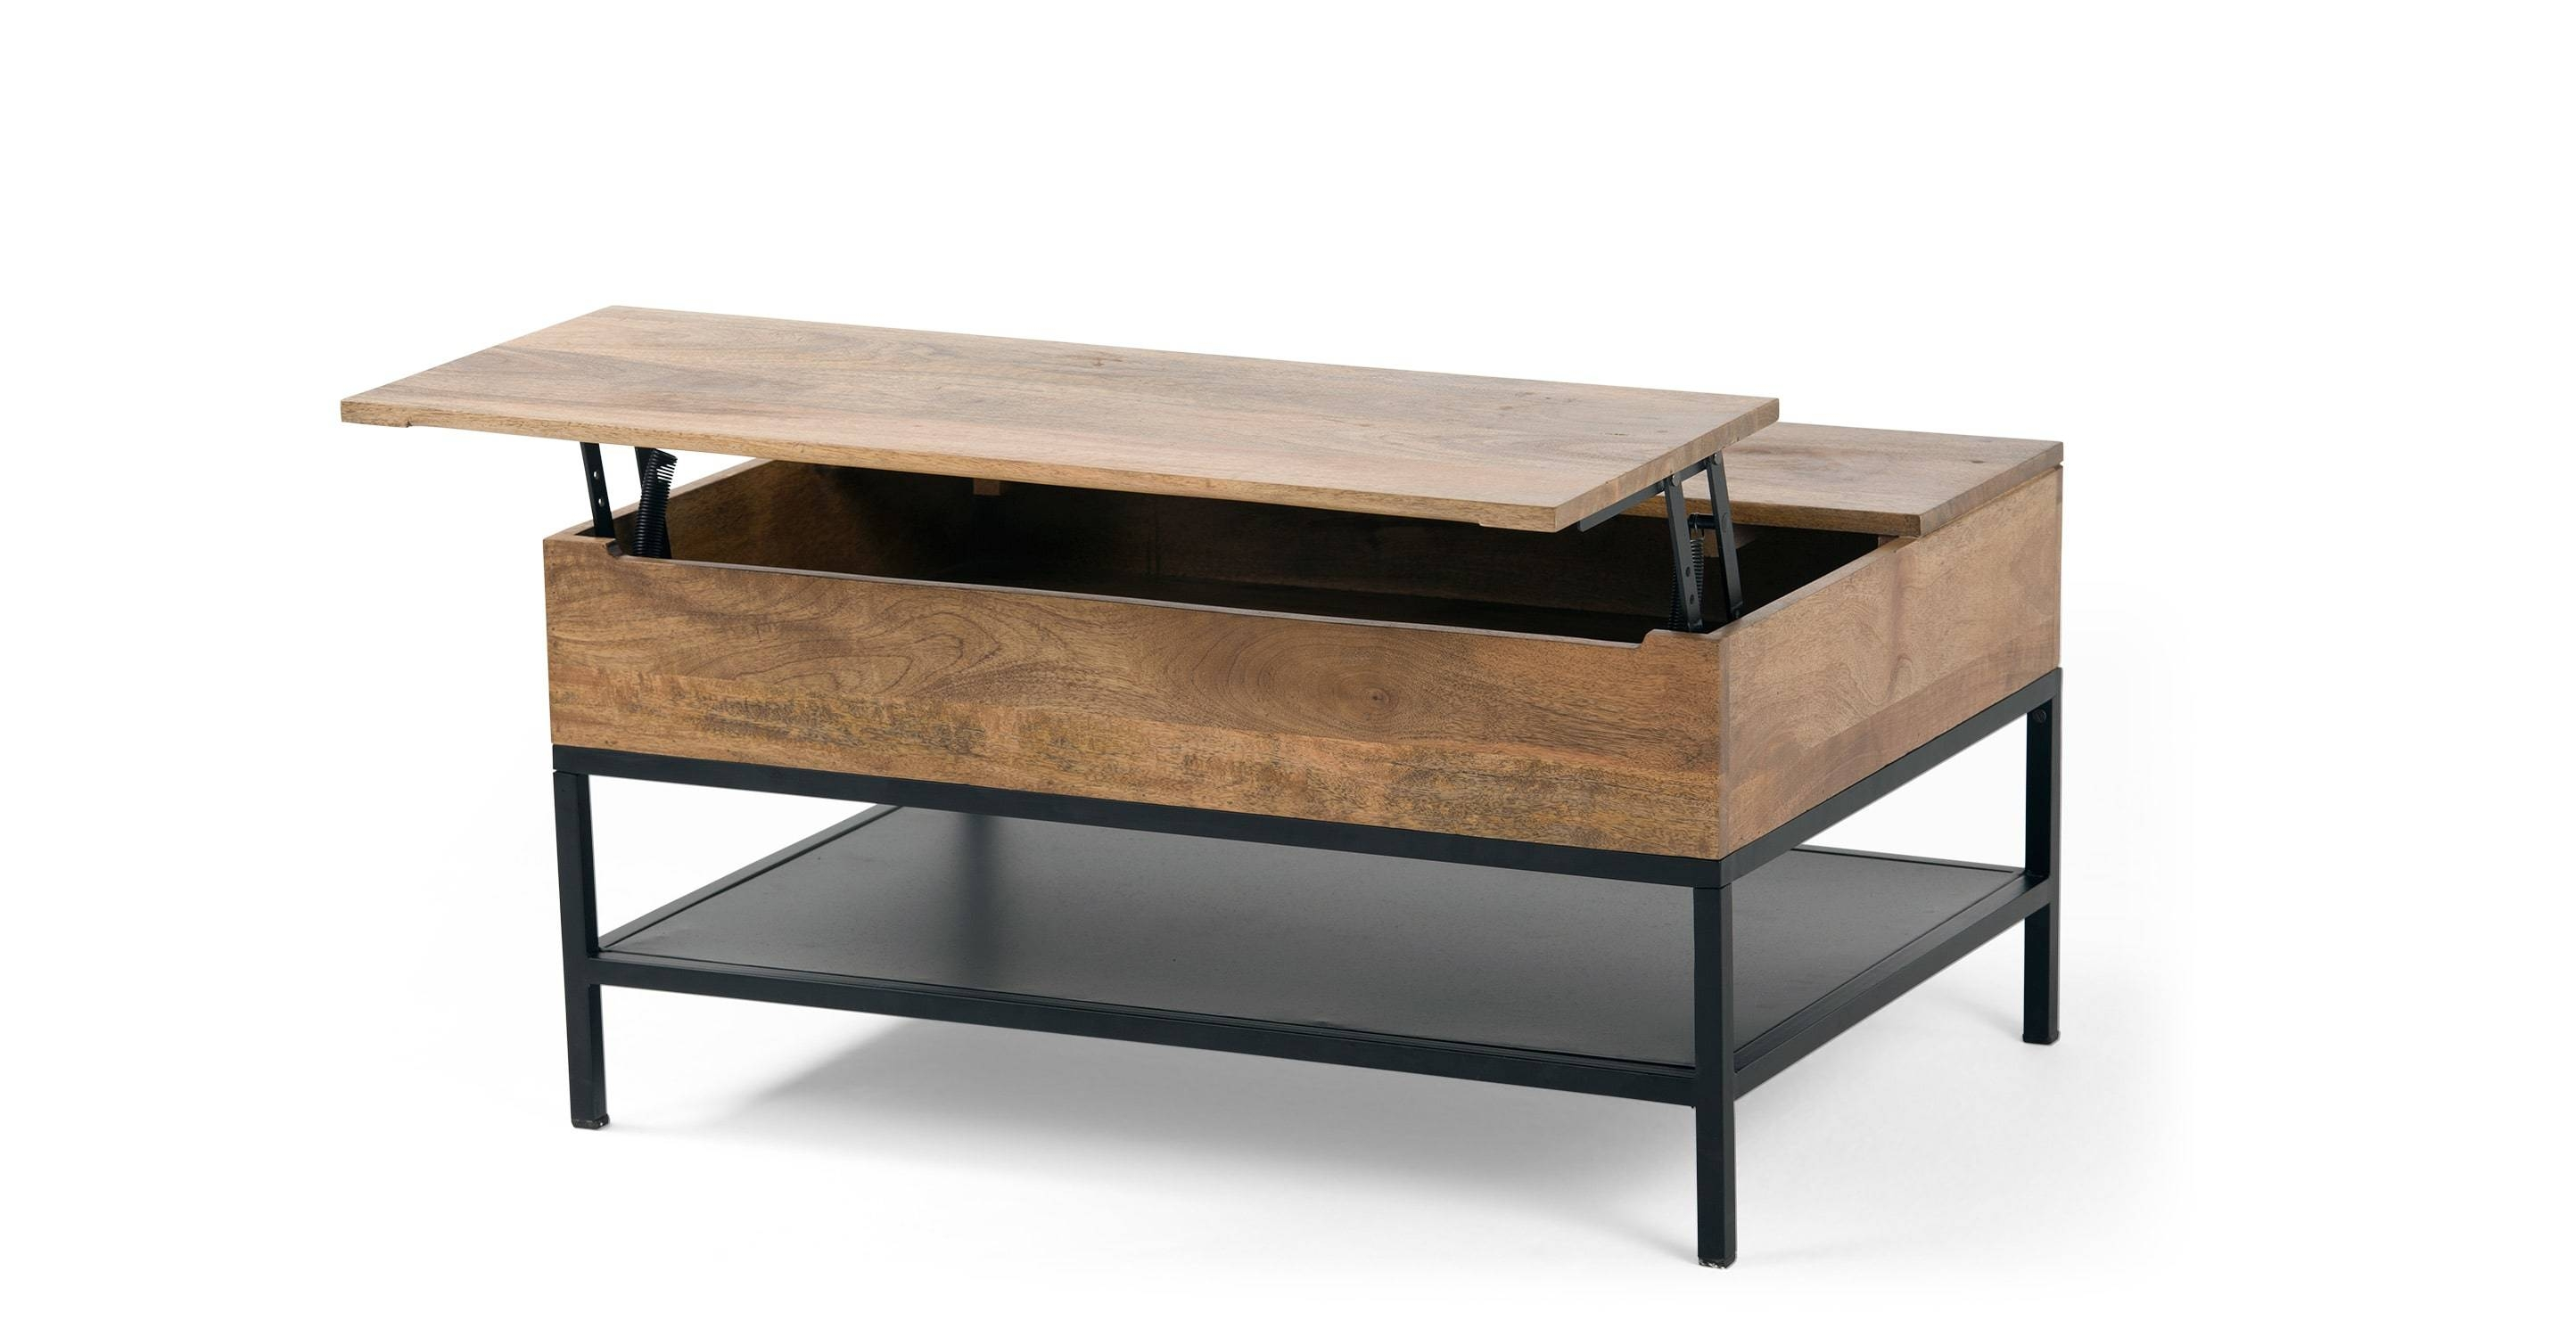 Lomond Lift Top Coffee Table With Storage, Mango Wood And Black throughout Mango Wood Coffee Tables (Image 16 of 30)